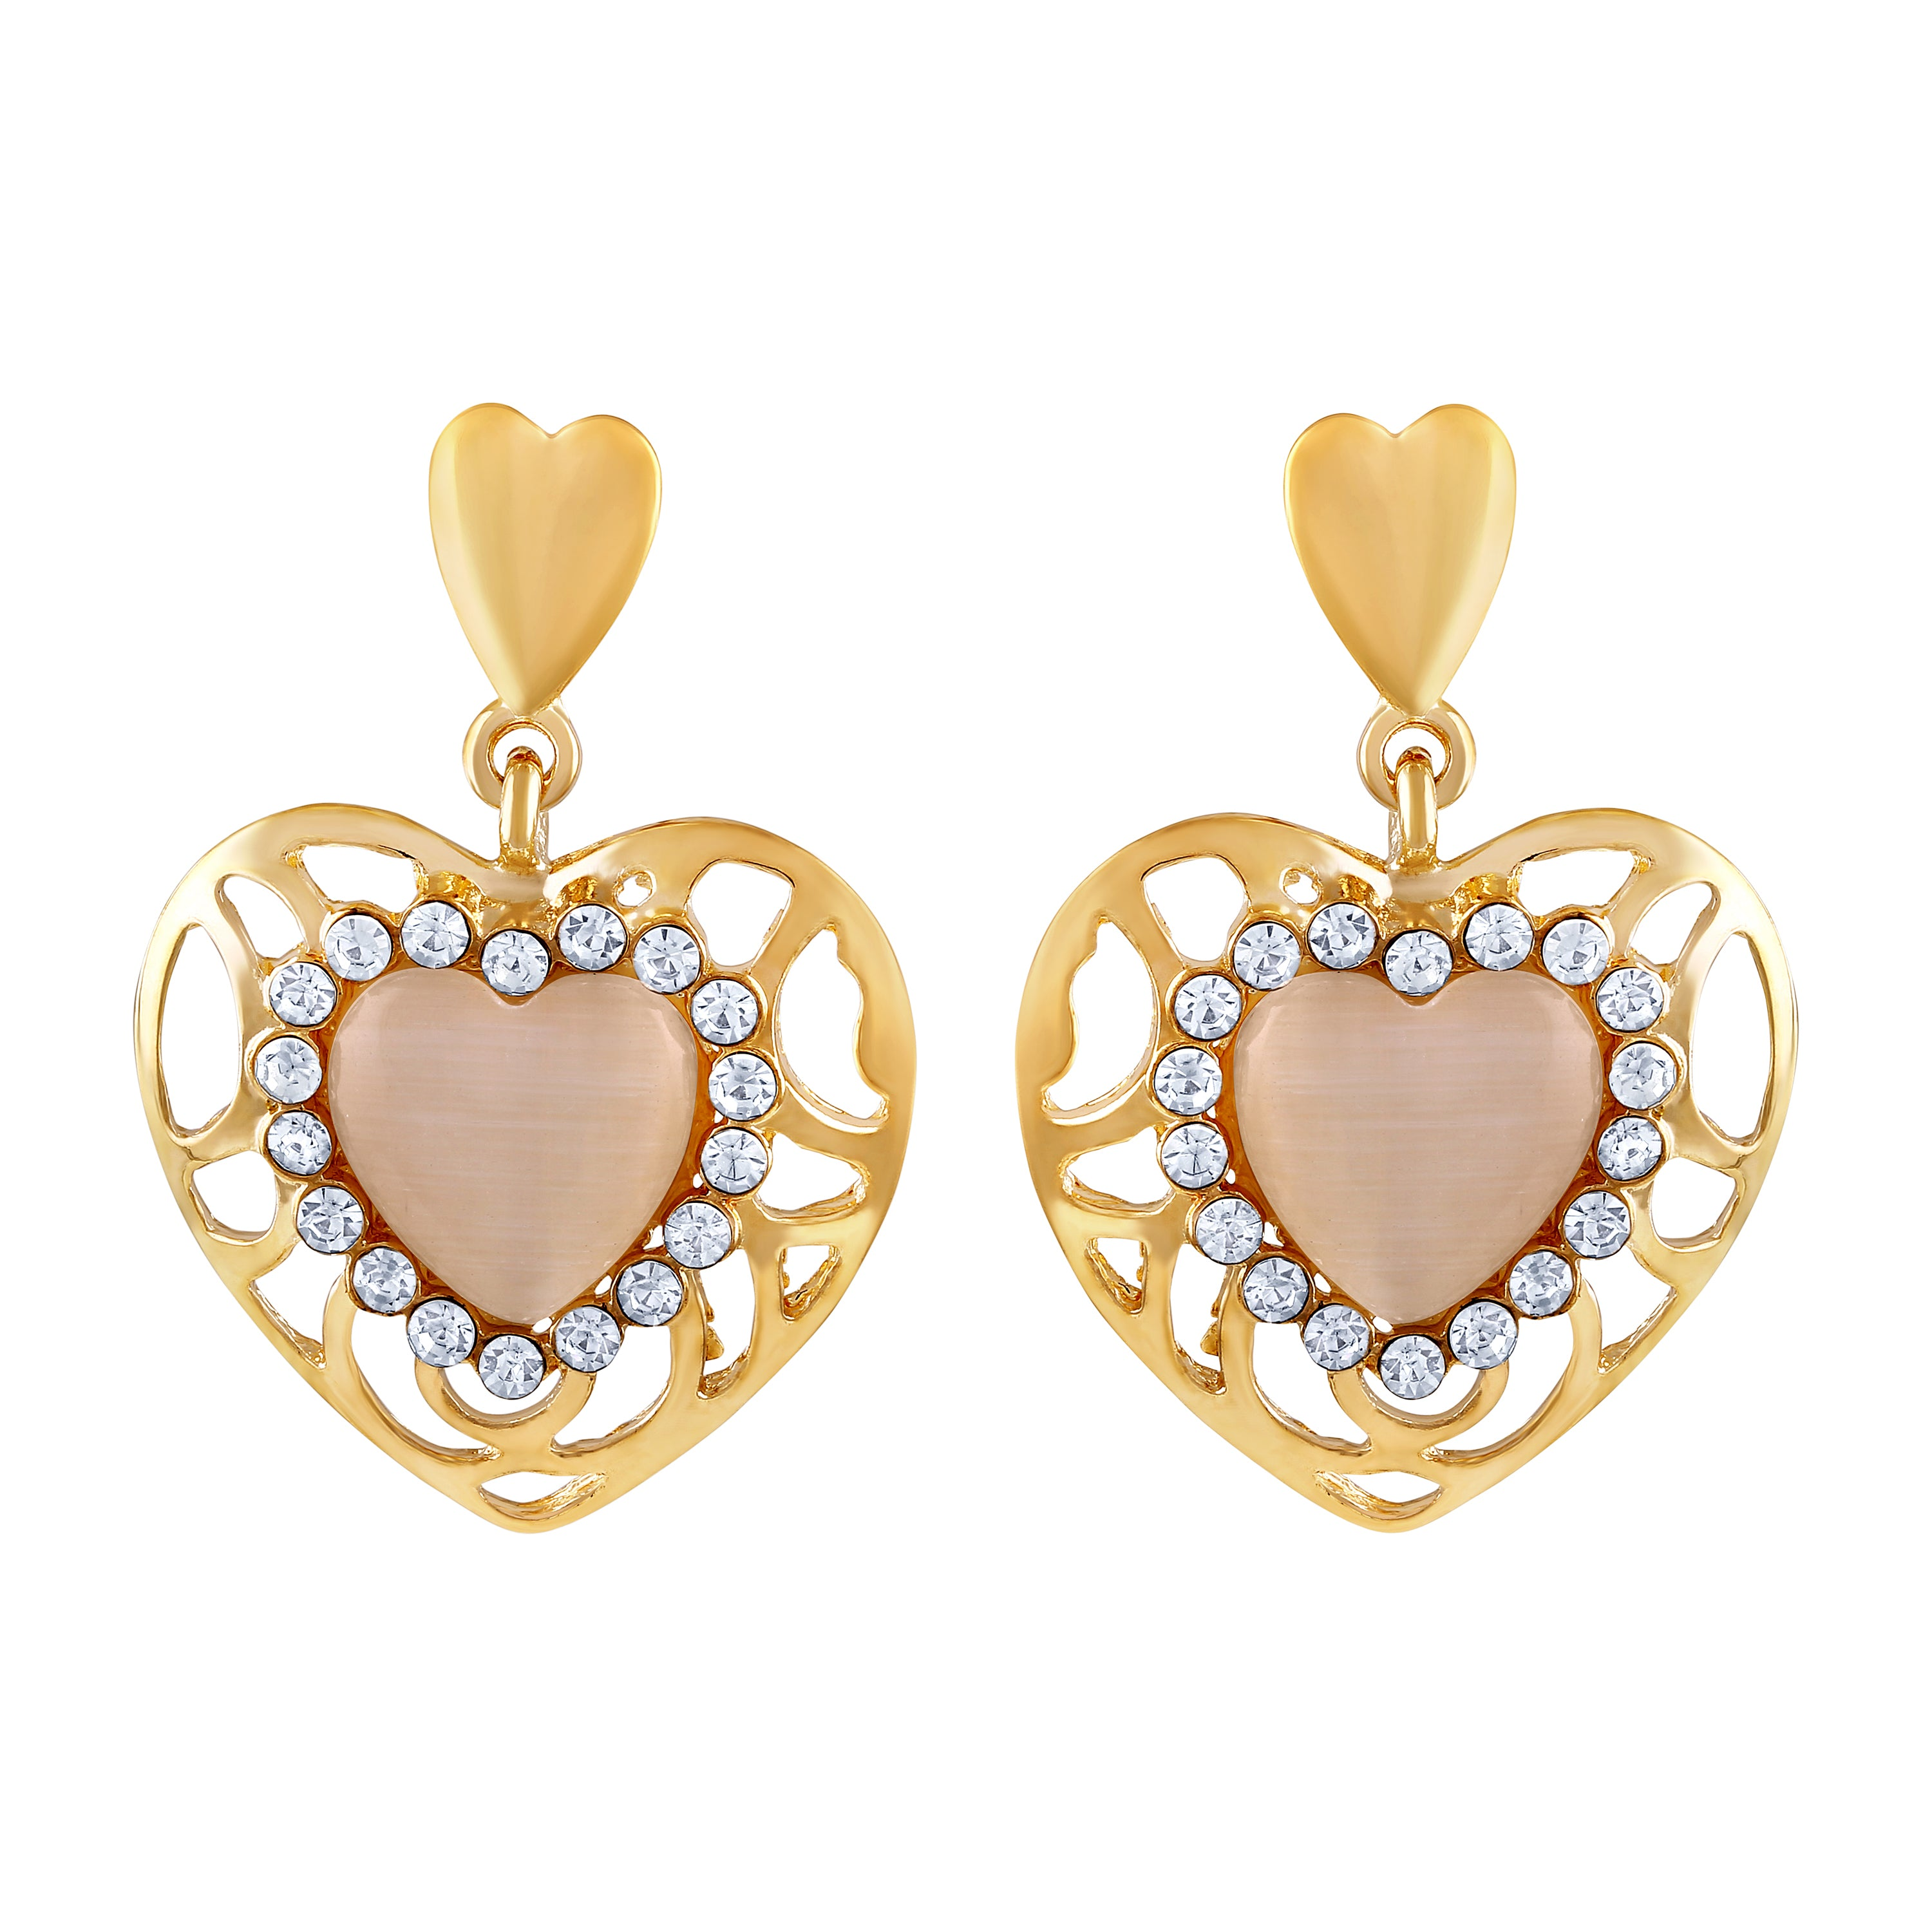 687e124ef Asmitta Classy Heart Shape With Crystal Gold Plated Dangle Earring For Women